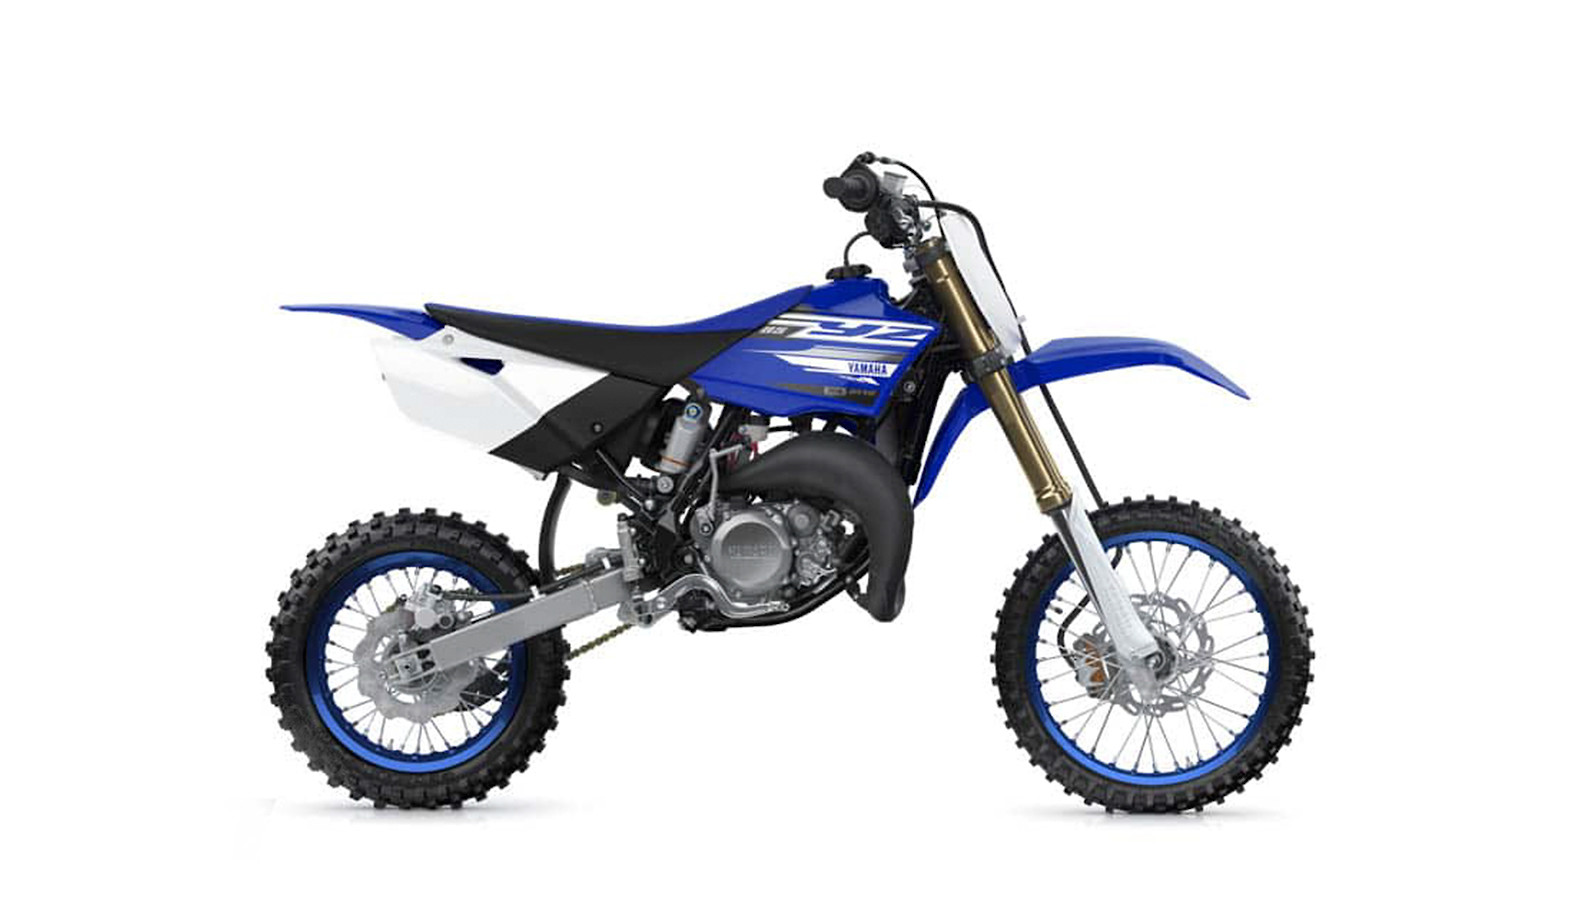 2019 yamaha yz85 reviews comparisons specs motocross. Black Bedroom Furniture Sets. Home Design Ideas